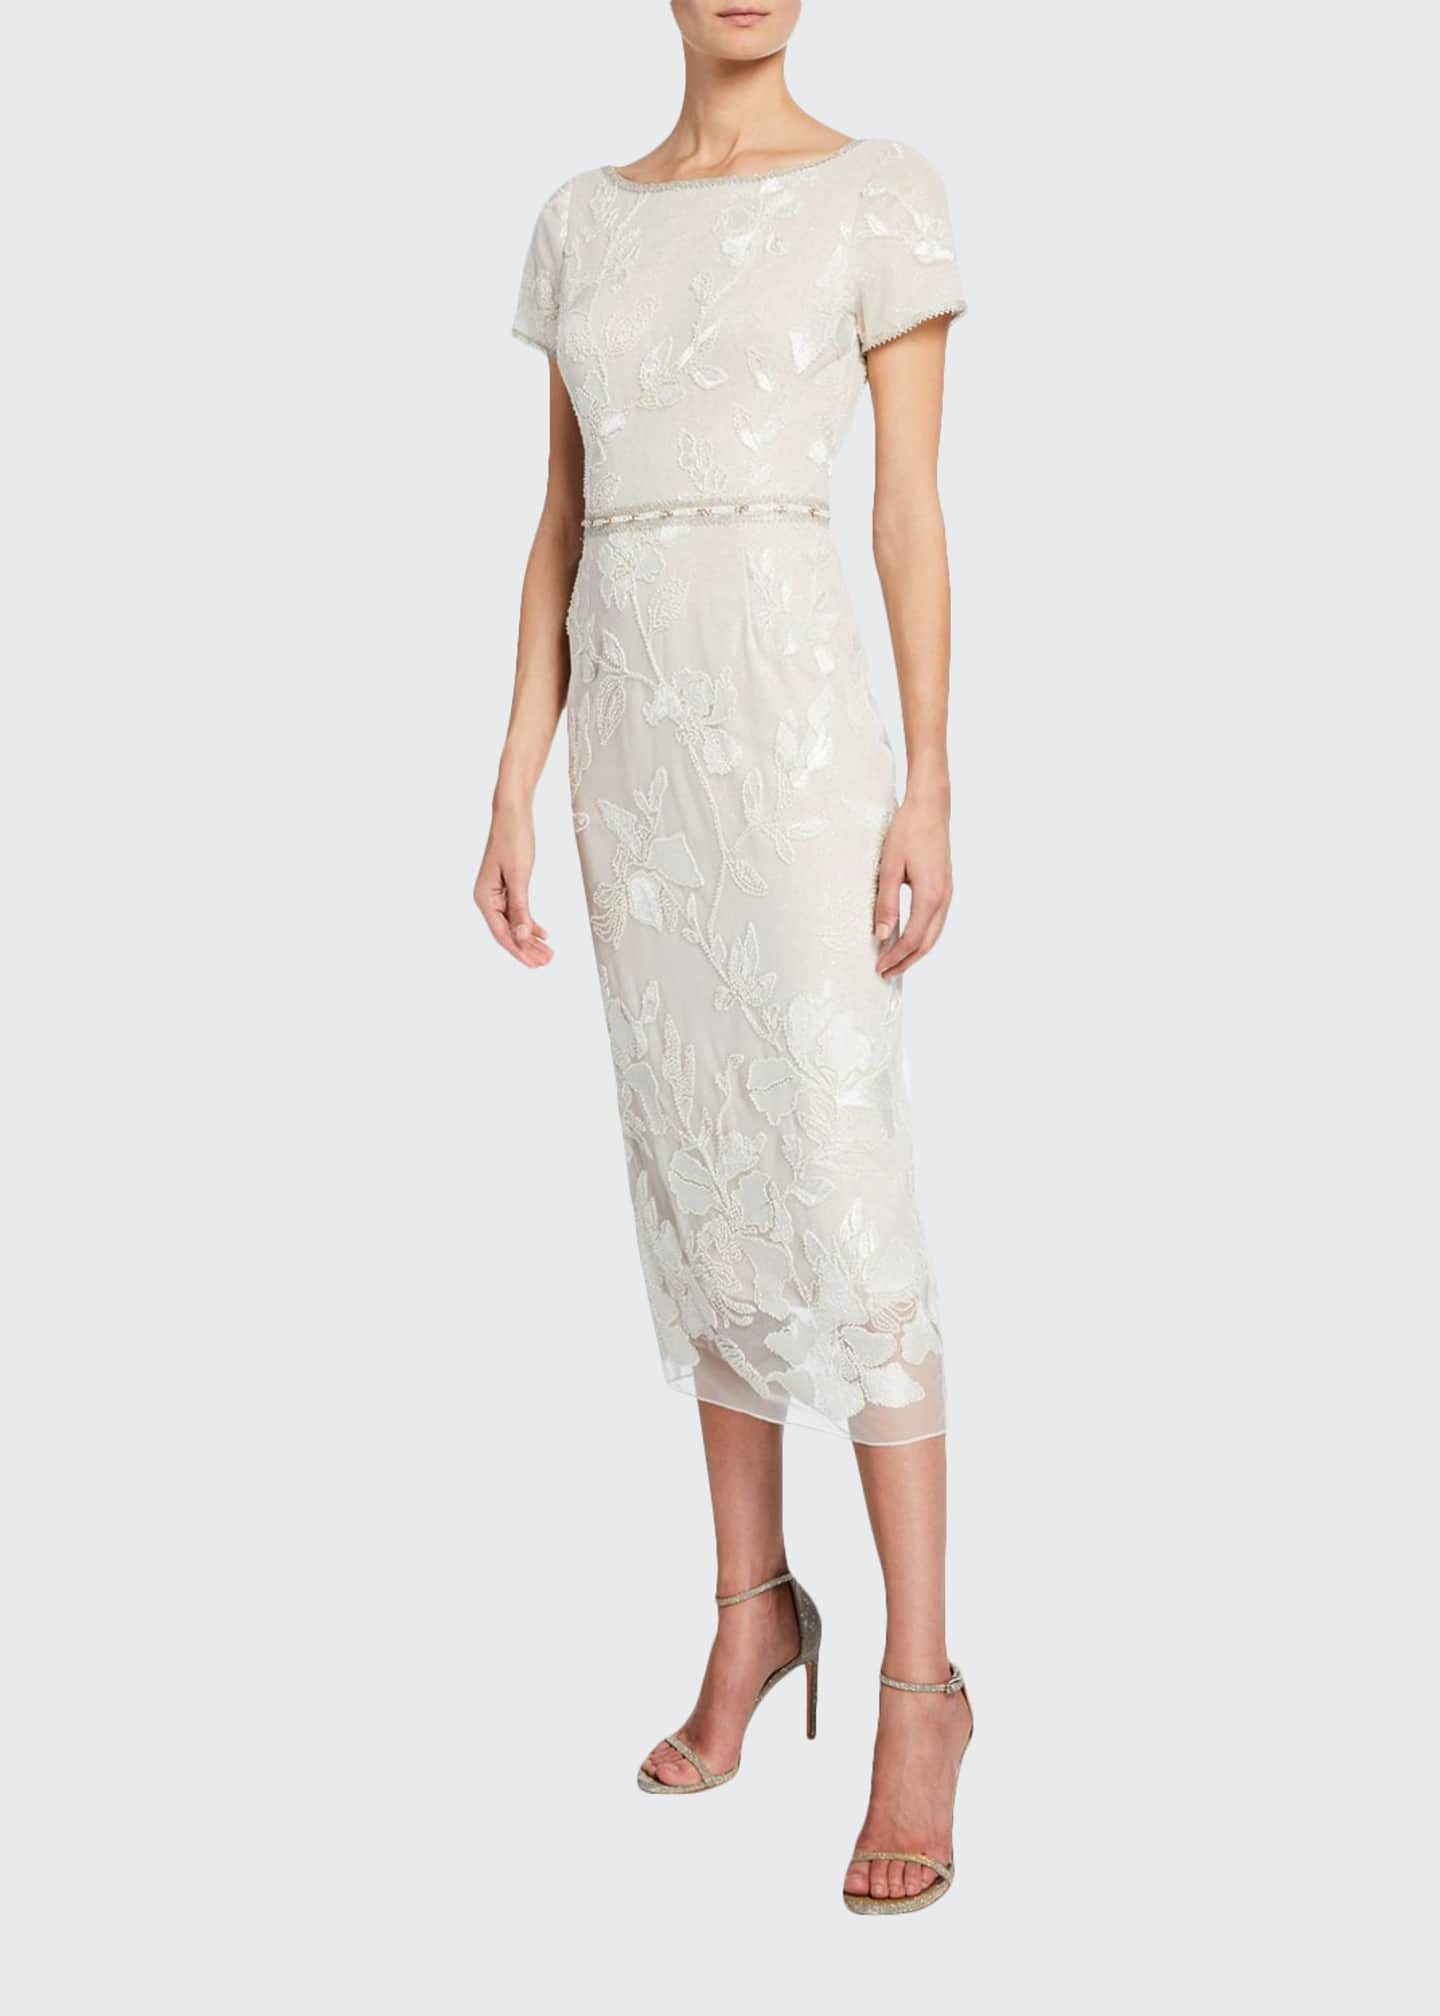 Marchesa Notte Short-Sleeve Metallic Floral Embroidered Sheath